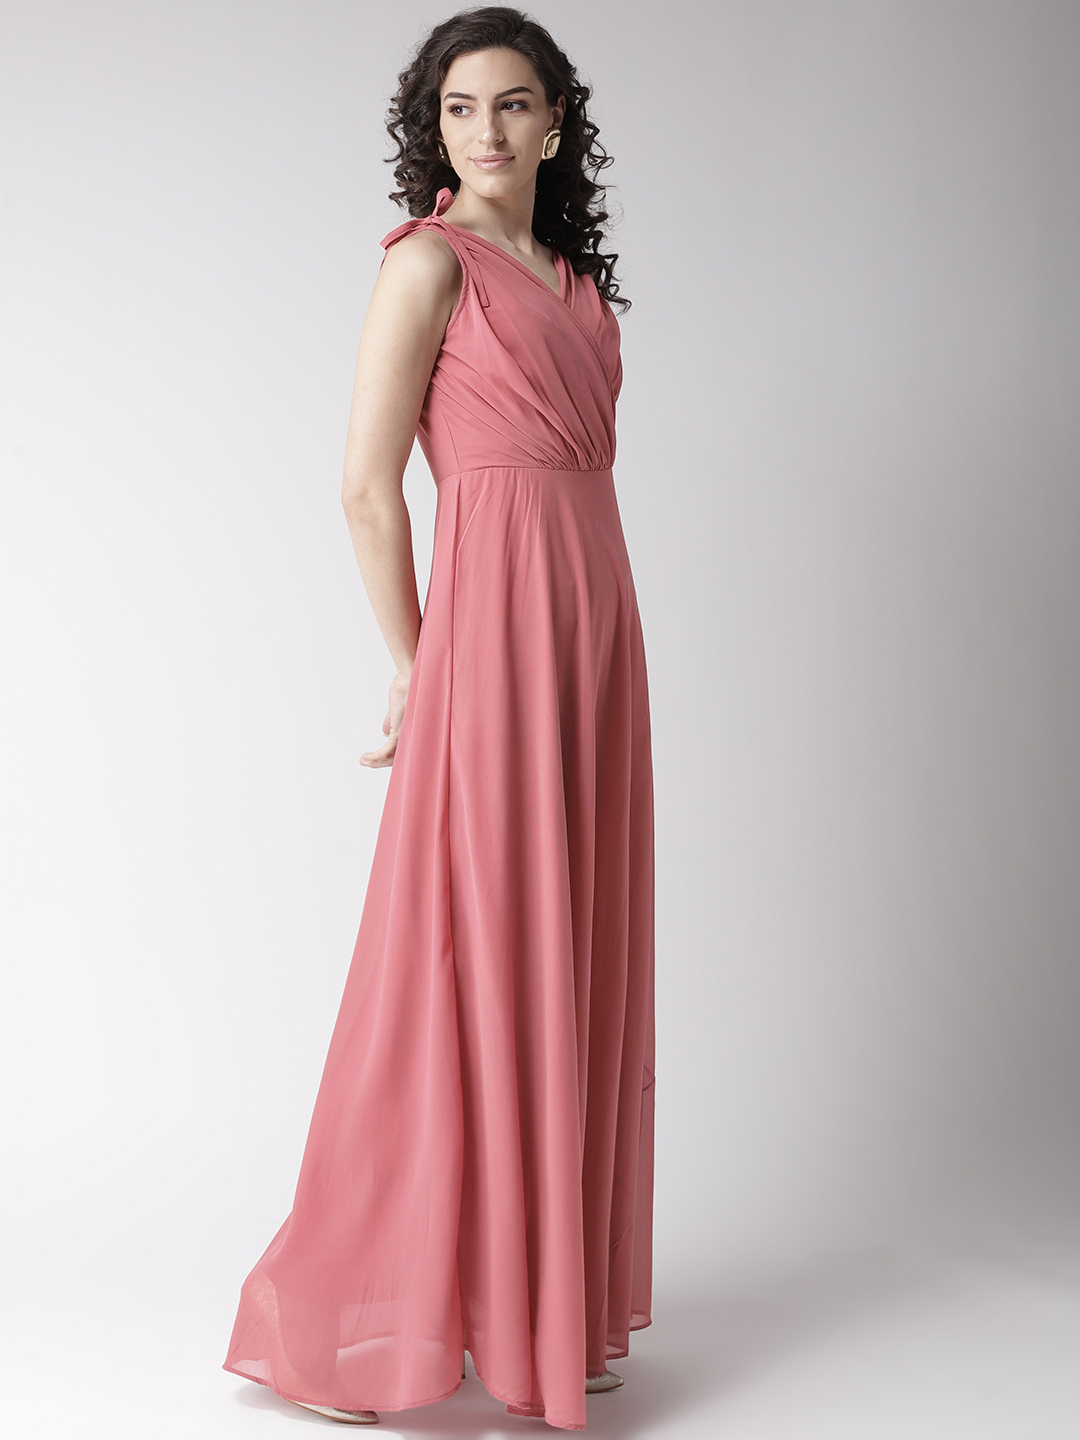 Dresses-Ready For The Royals Pink Maxi Dress1